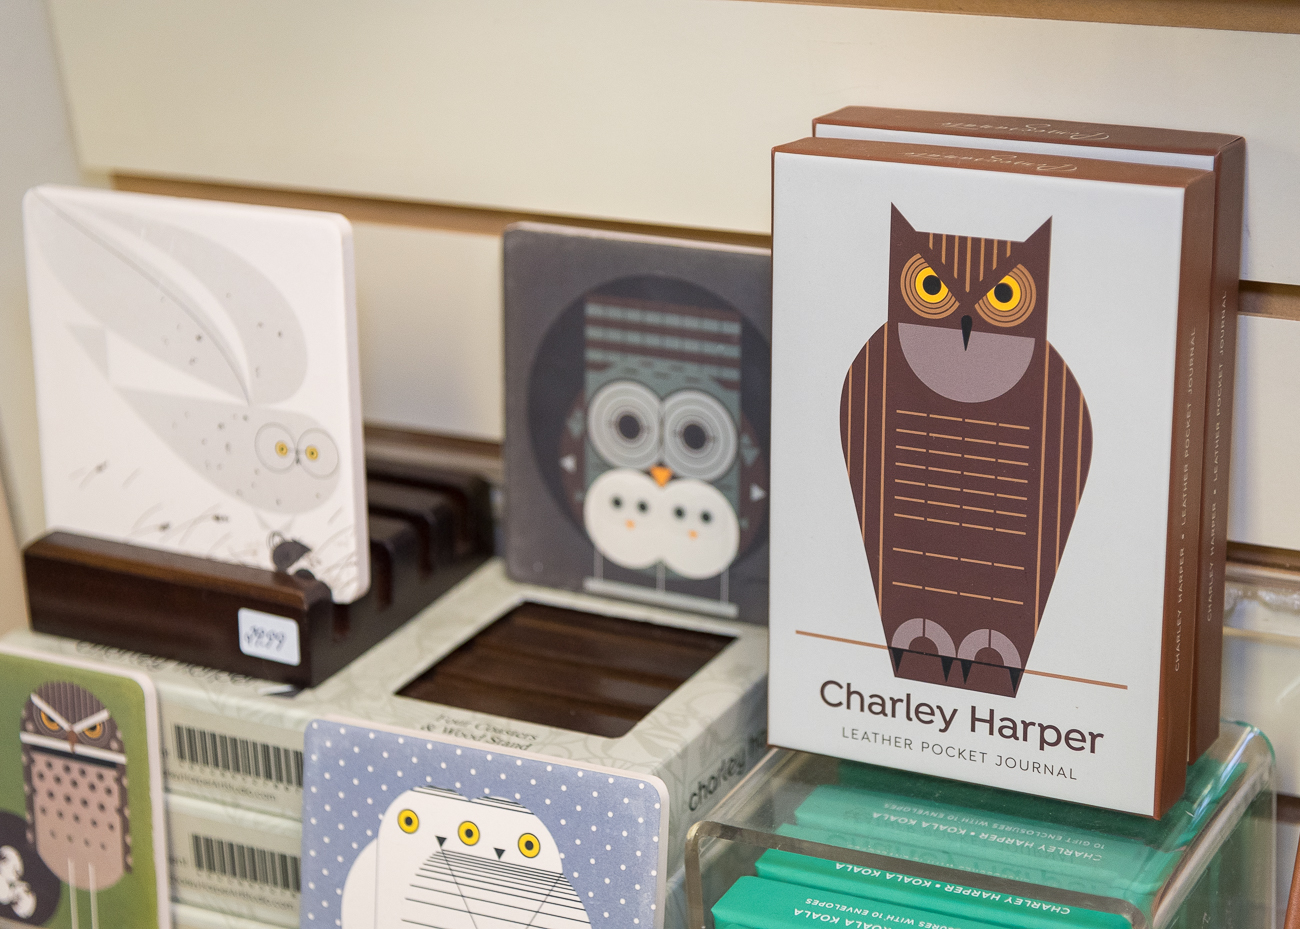 The Shop has a good collection of Charley Harper-branded merchandise. / Image: Phil Armstrong, Cincinnati Refined // Published: 12.13.18